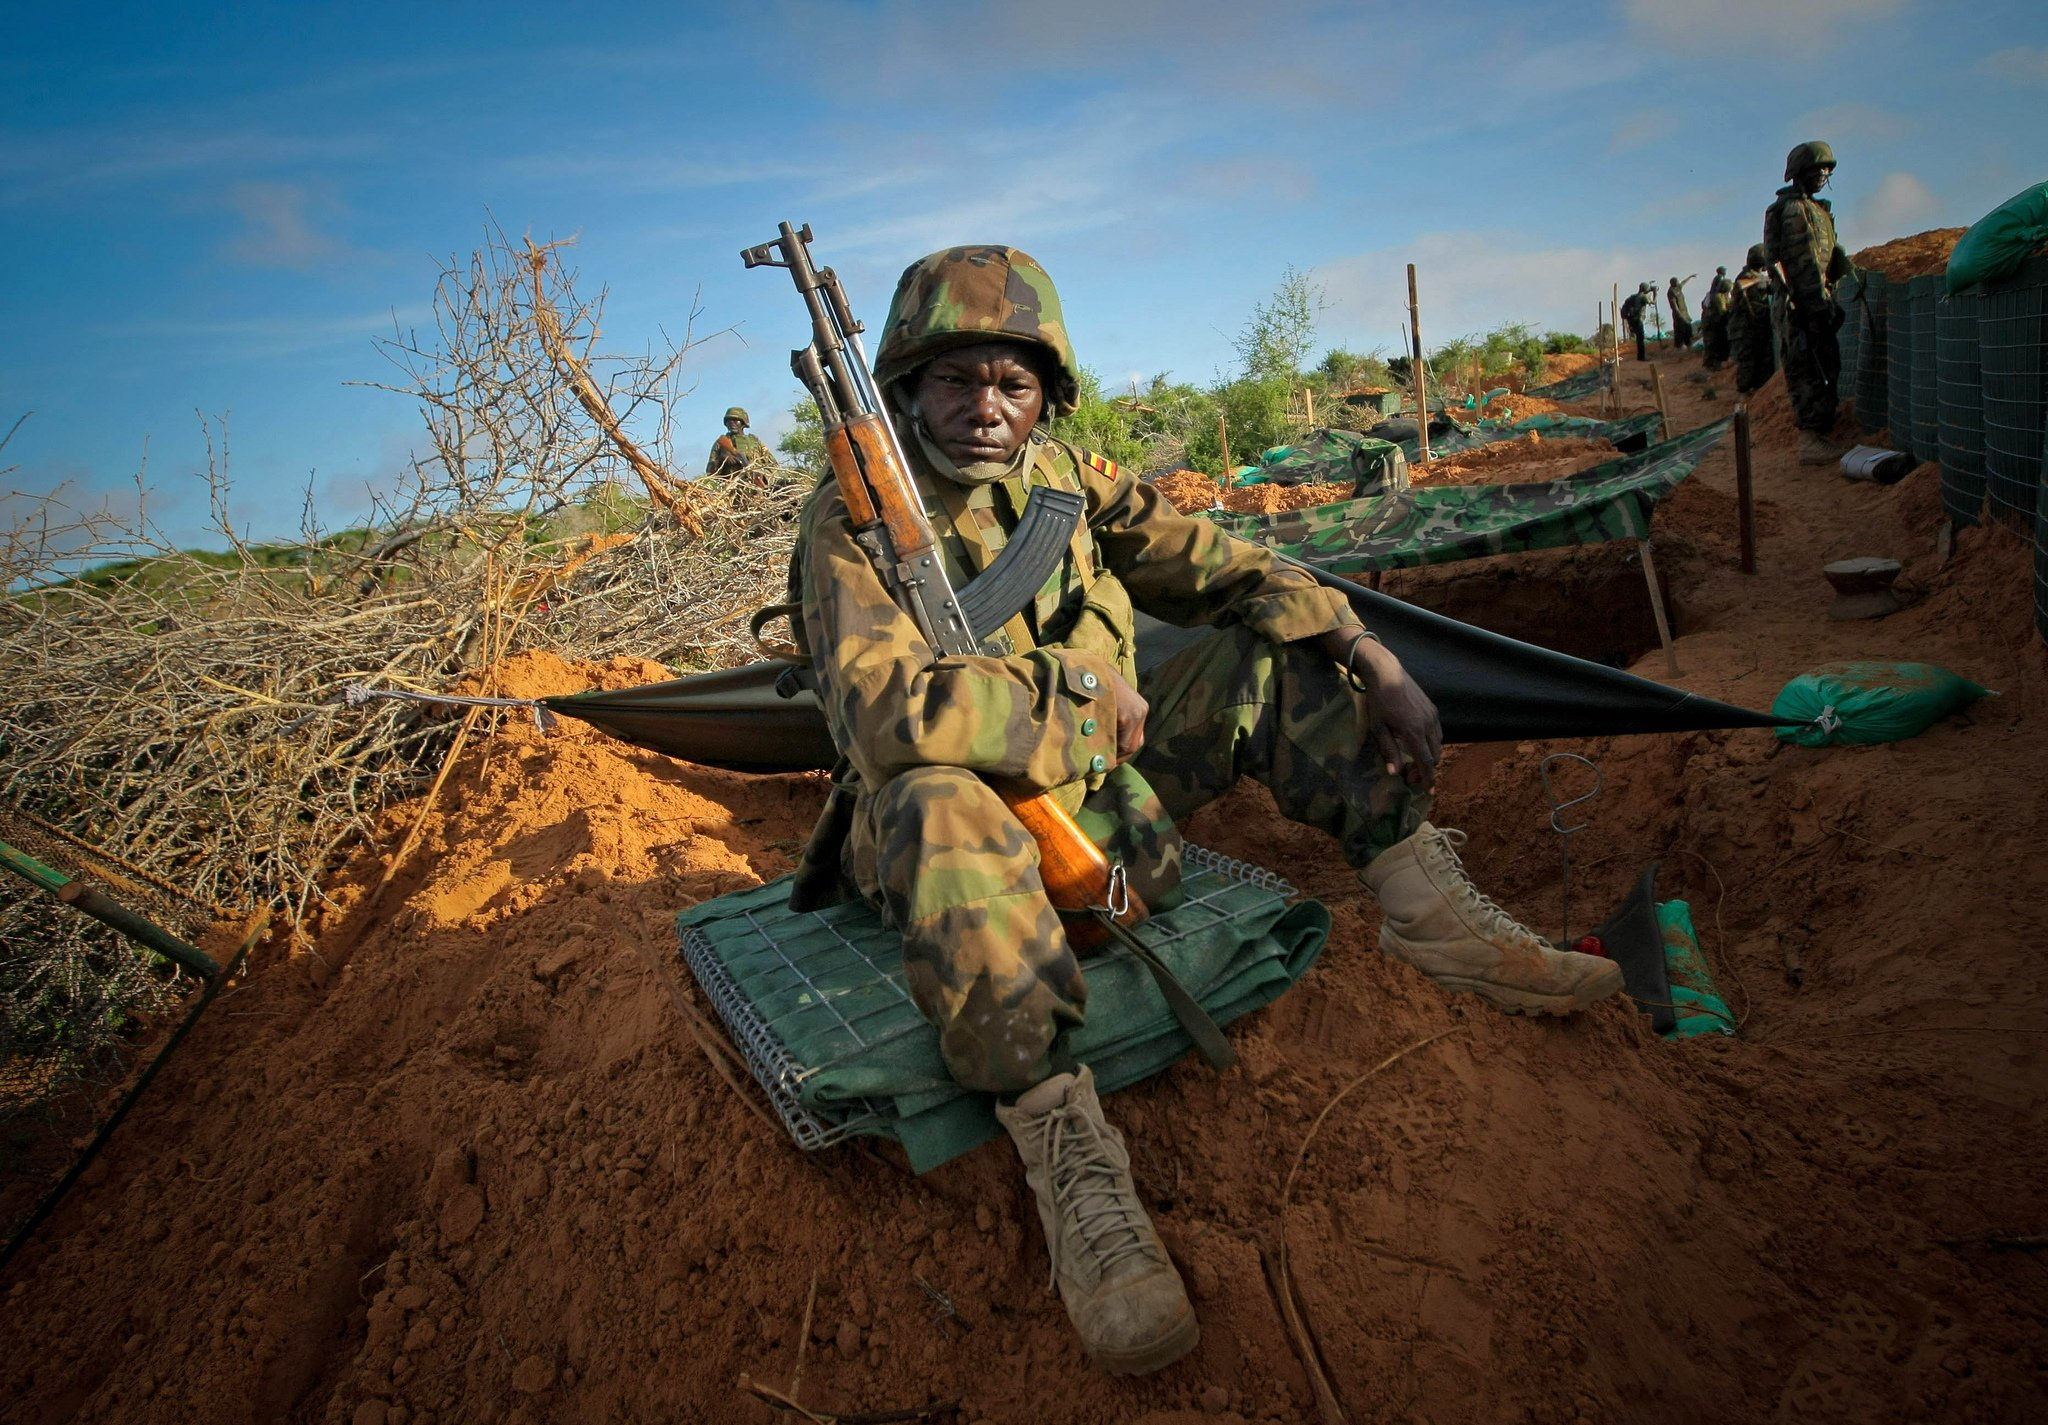 Ugandan soldiers serving with the African Union Mission in Somalia (AMISOM) man the frontline near Mogadishu, 2012 © AMISOM